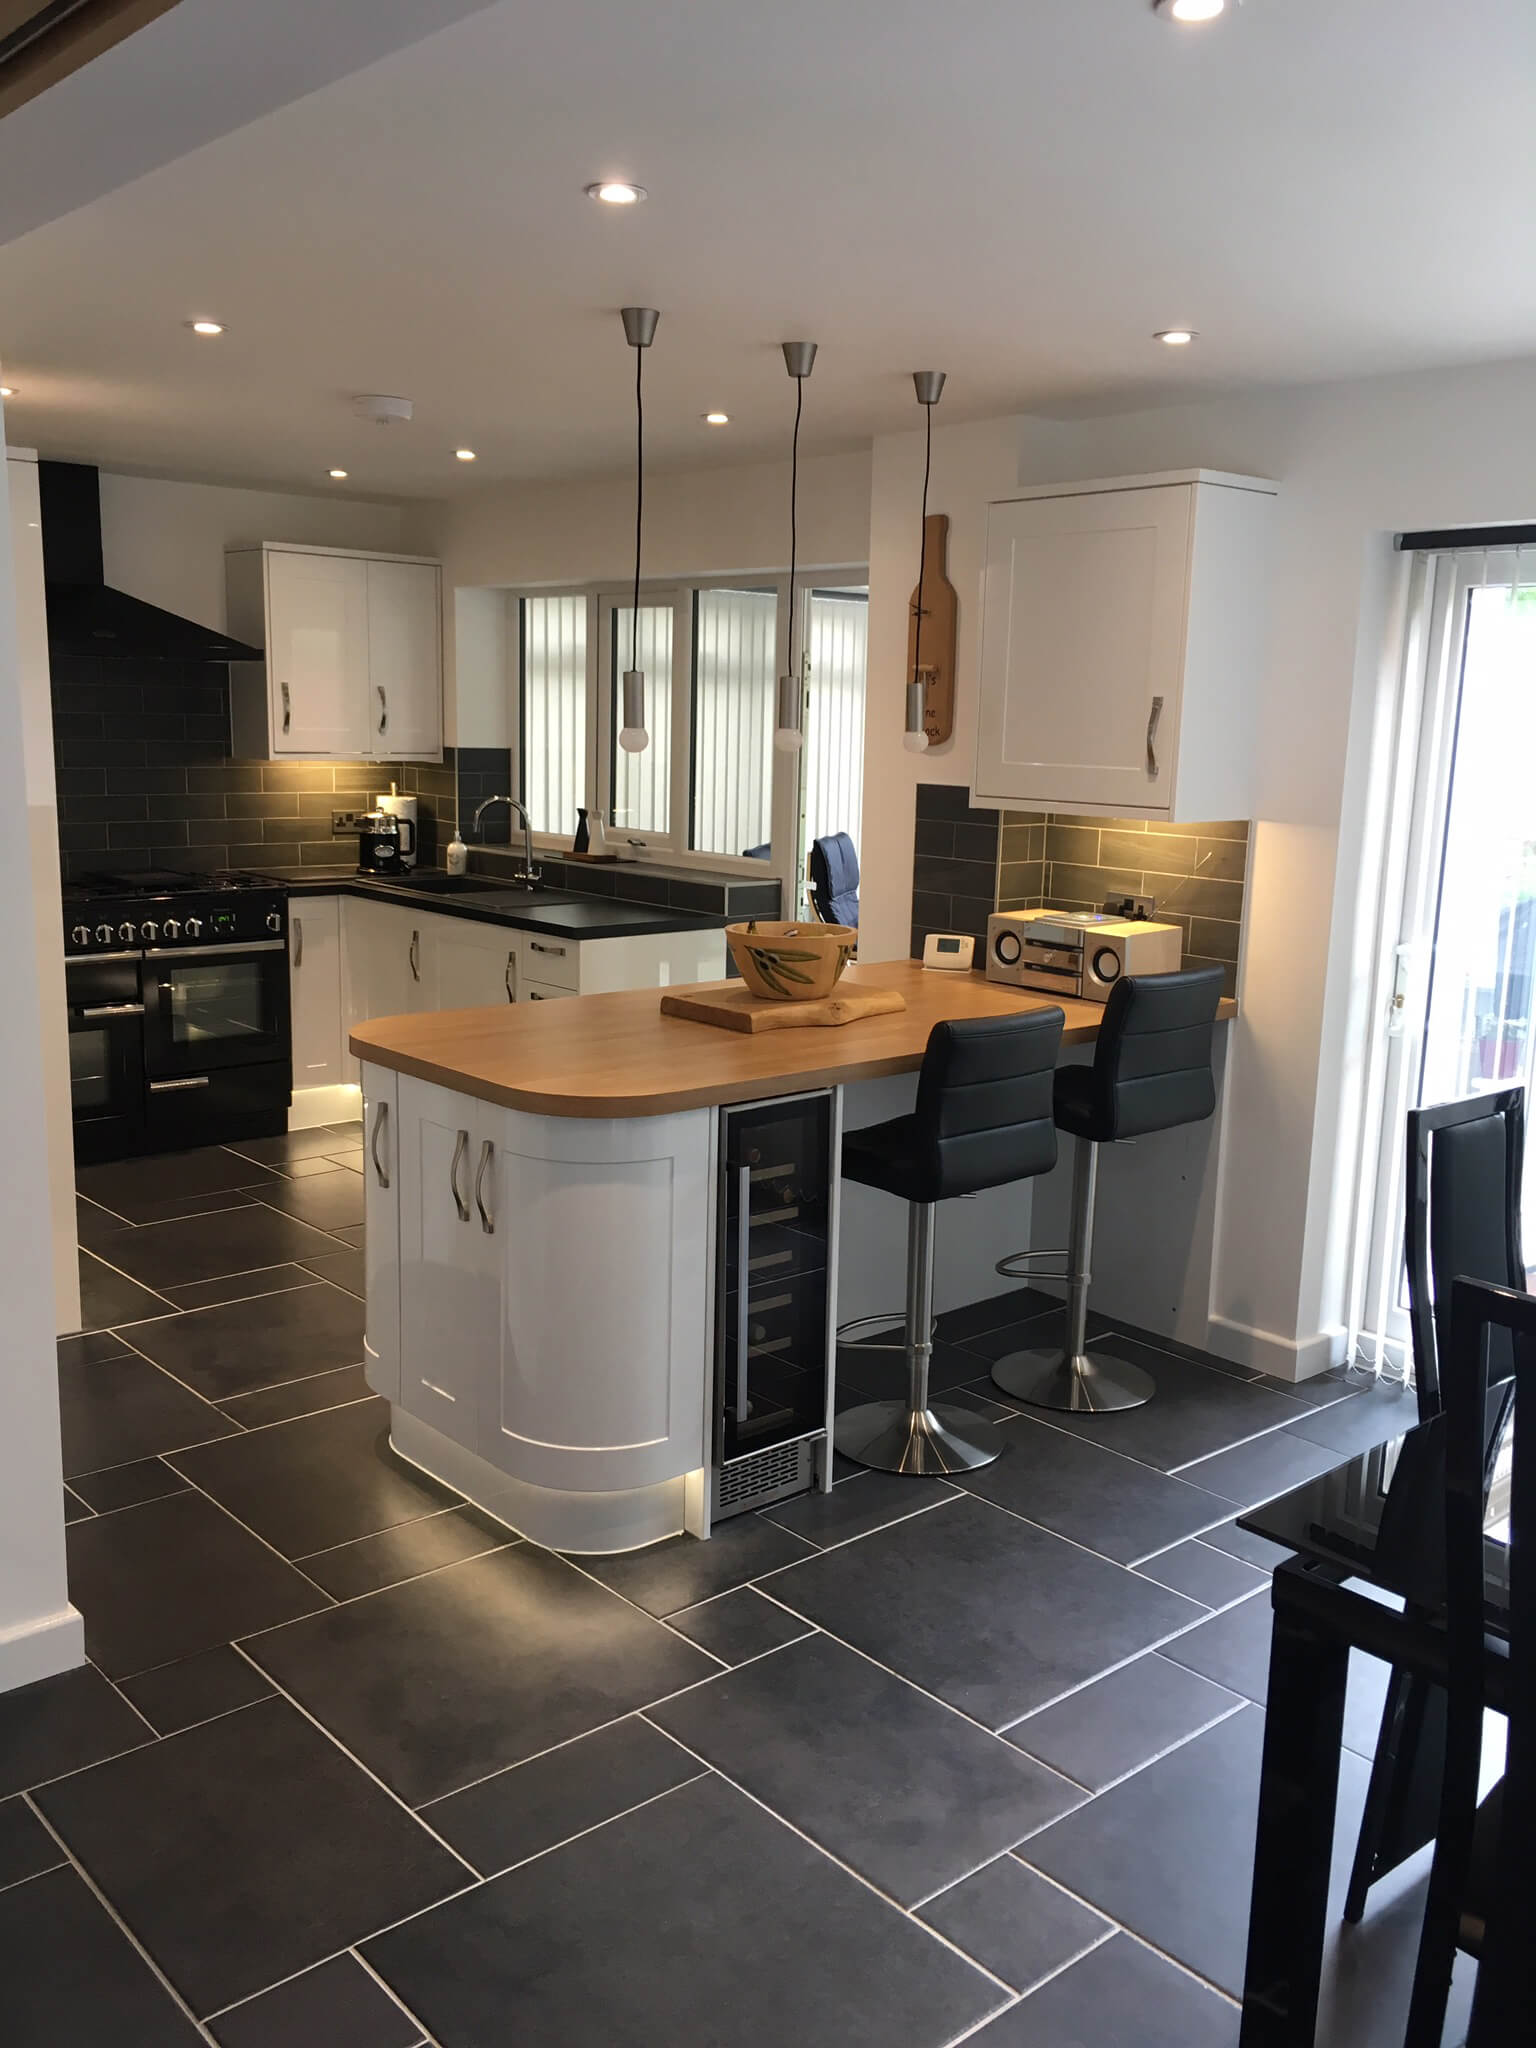 JLS Design & Build Joinery Manufacturer and Building Contractor in Coventry and Warwickshire Modern Kitchen